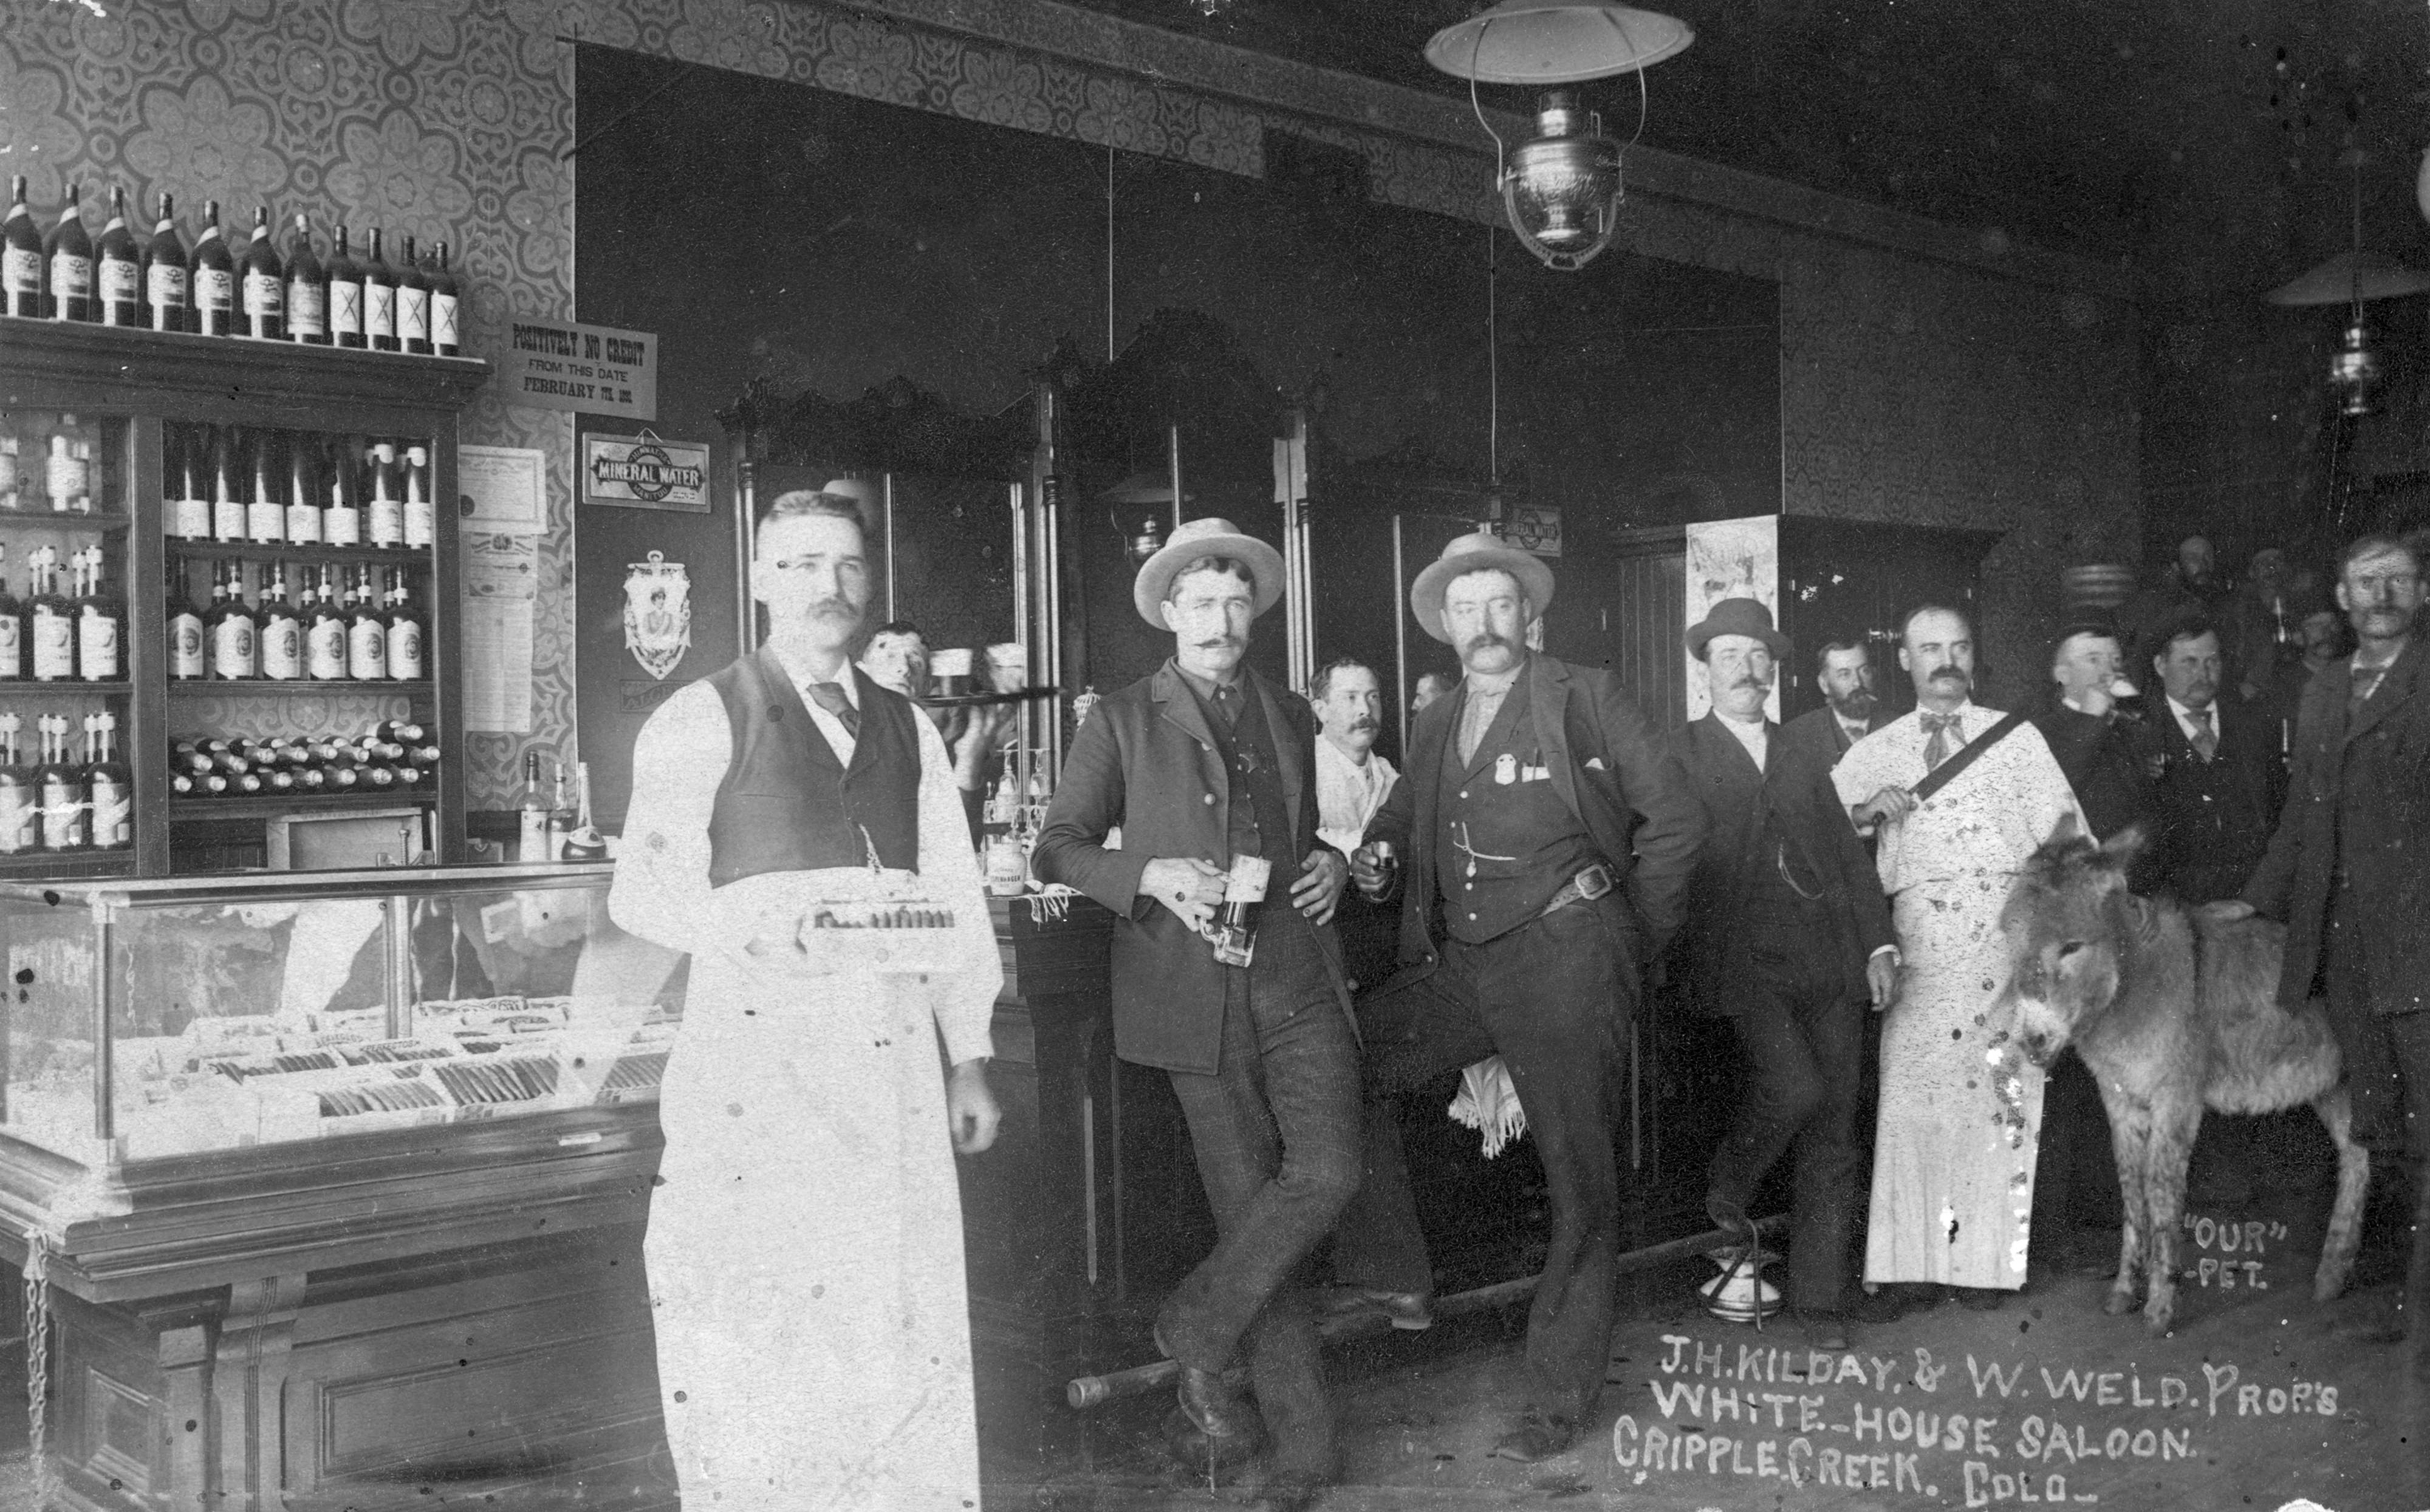 Saloon in Cripple Creek